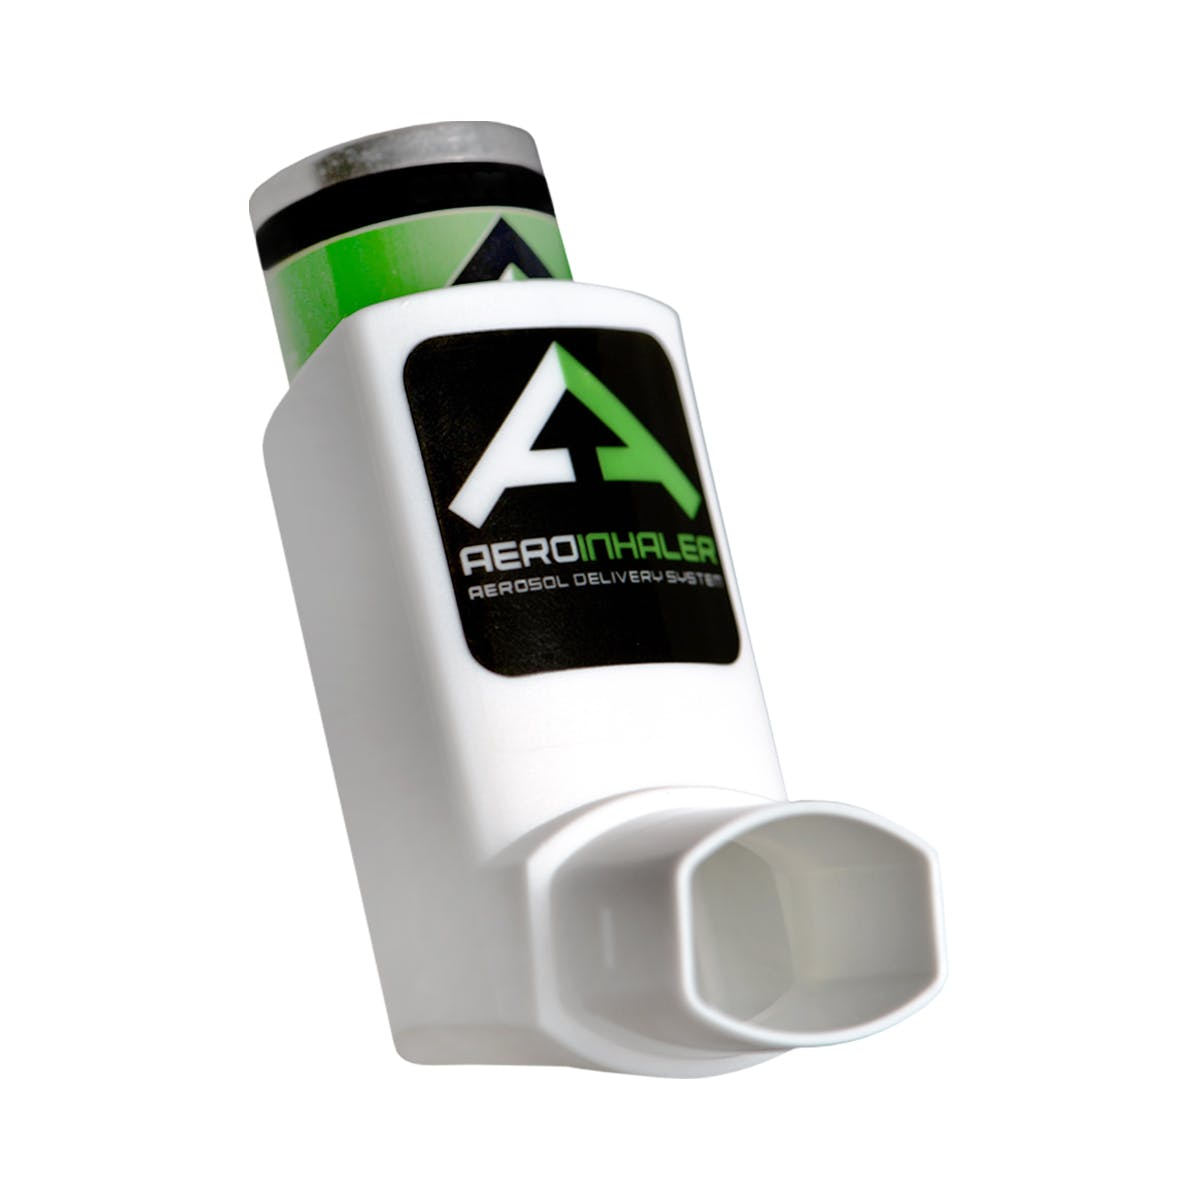 marijuana-dispensaries-natures-herbs-and-wellness-ii-in-log-lane-village-aeroinhaler